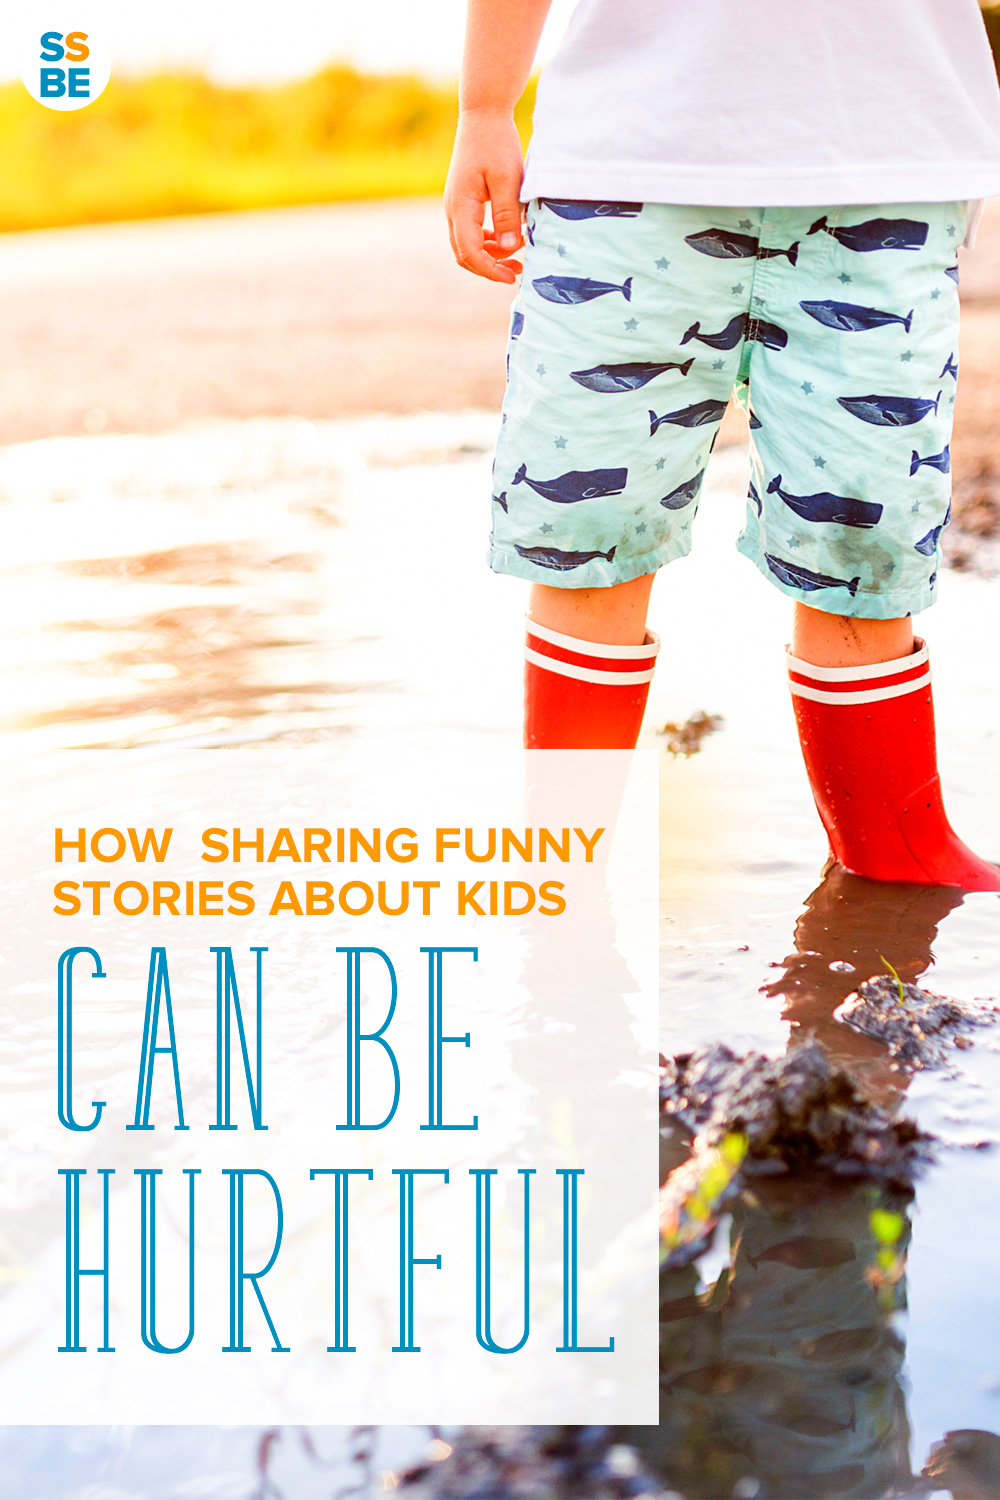 We've all shared our kids' funny quirks and responses. But sometimes we can unintentionally hurt them. Here's how sharing funny stories about kids can be hurtful.